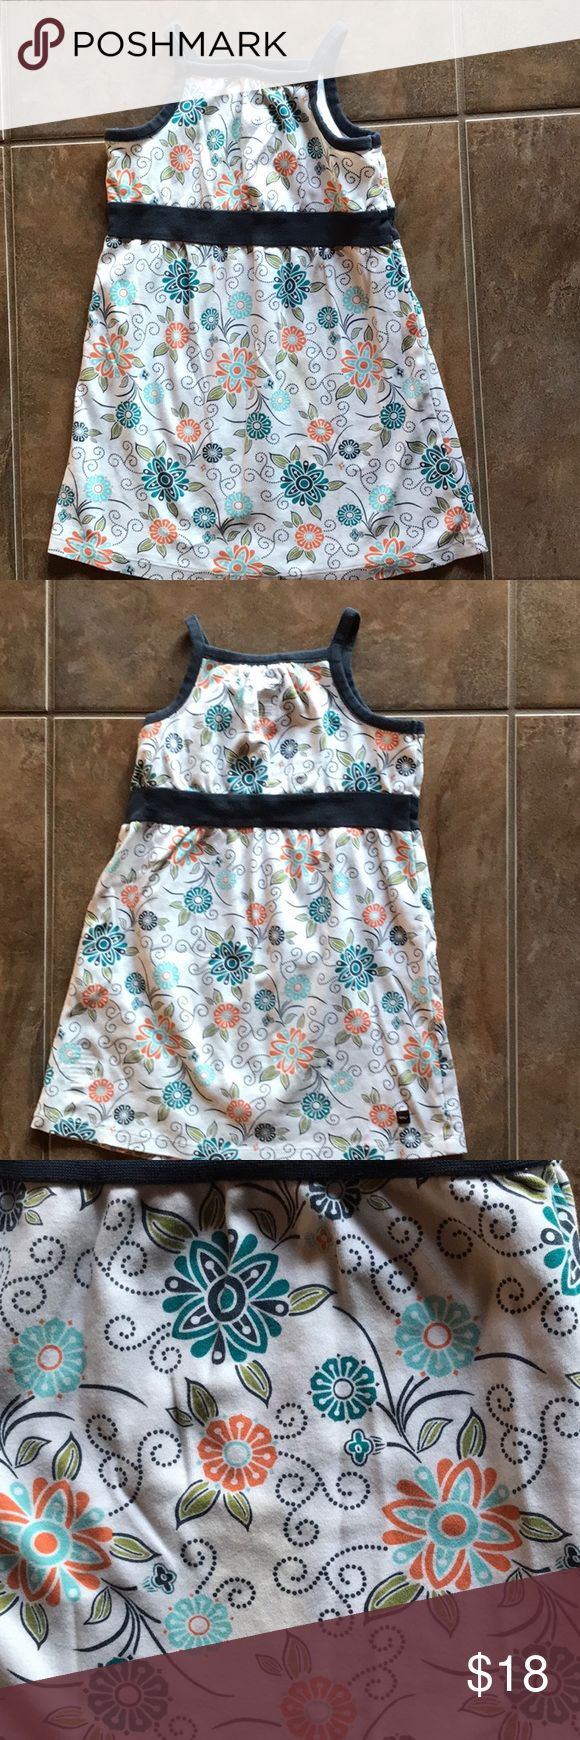 Girl's Tea sundress Adorable Tea sundress with great colors. Floral pattern. Clean. No spots or stains tea Dresses Casual